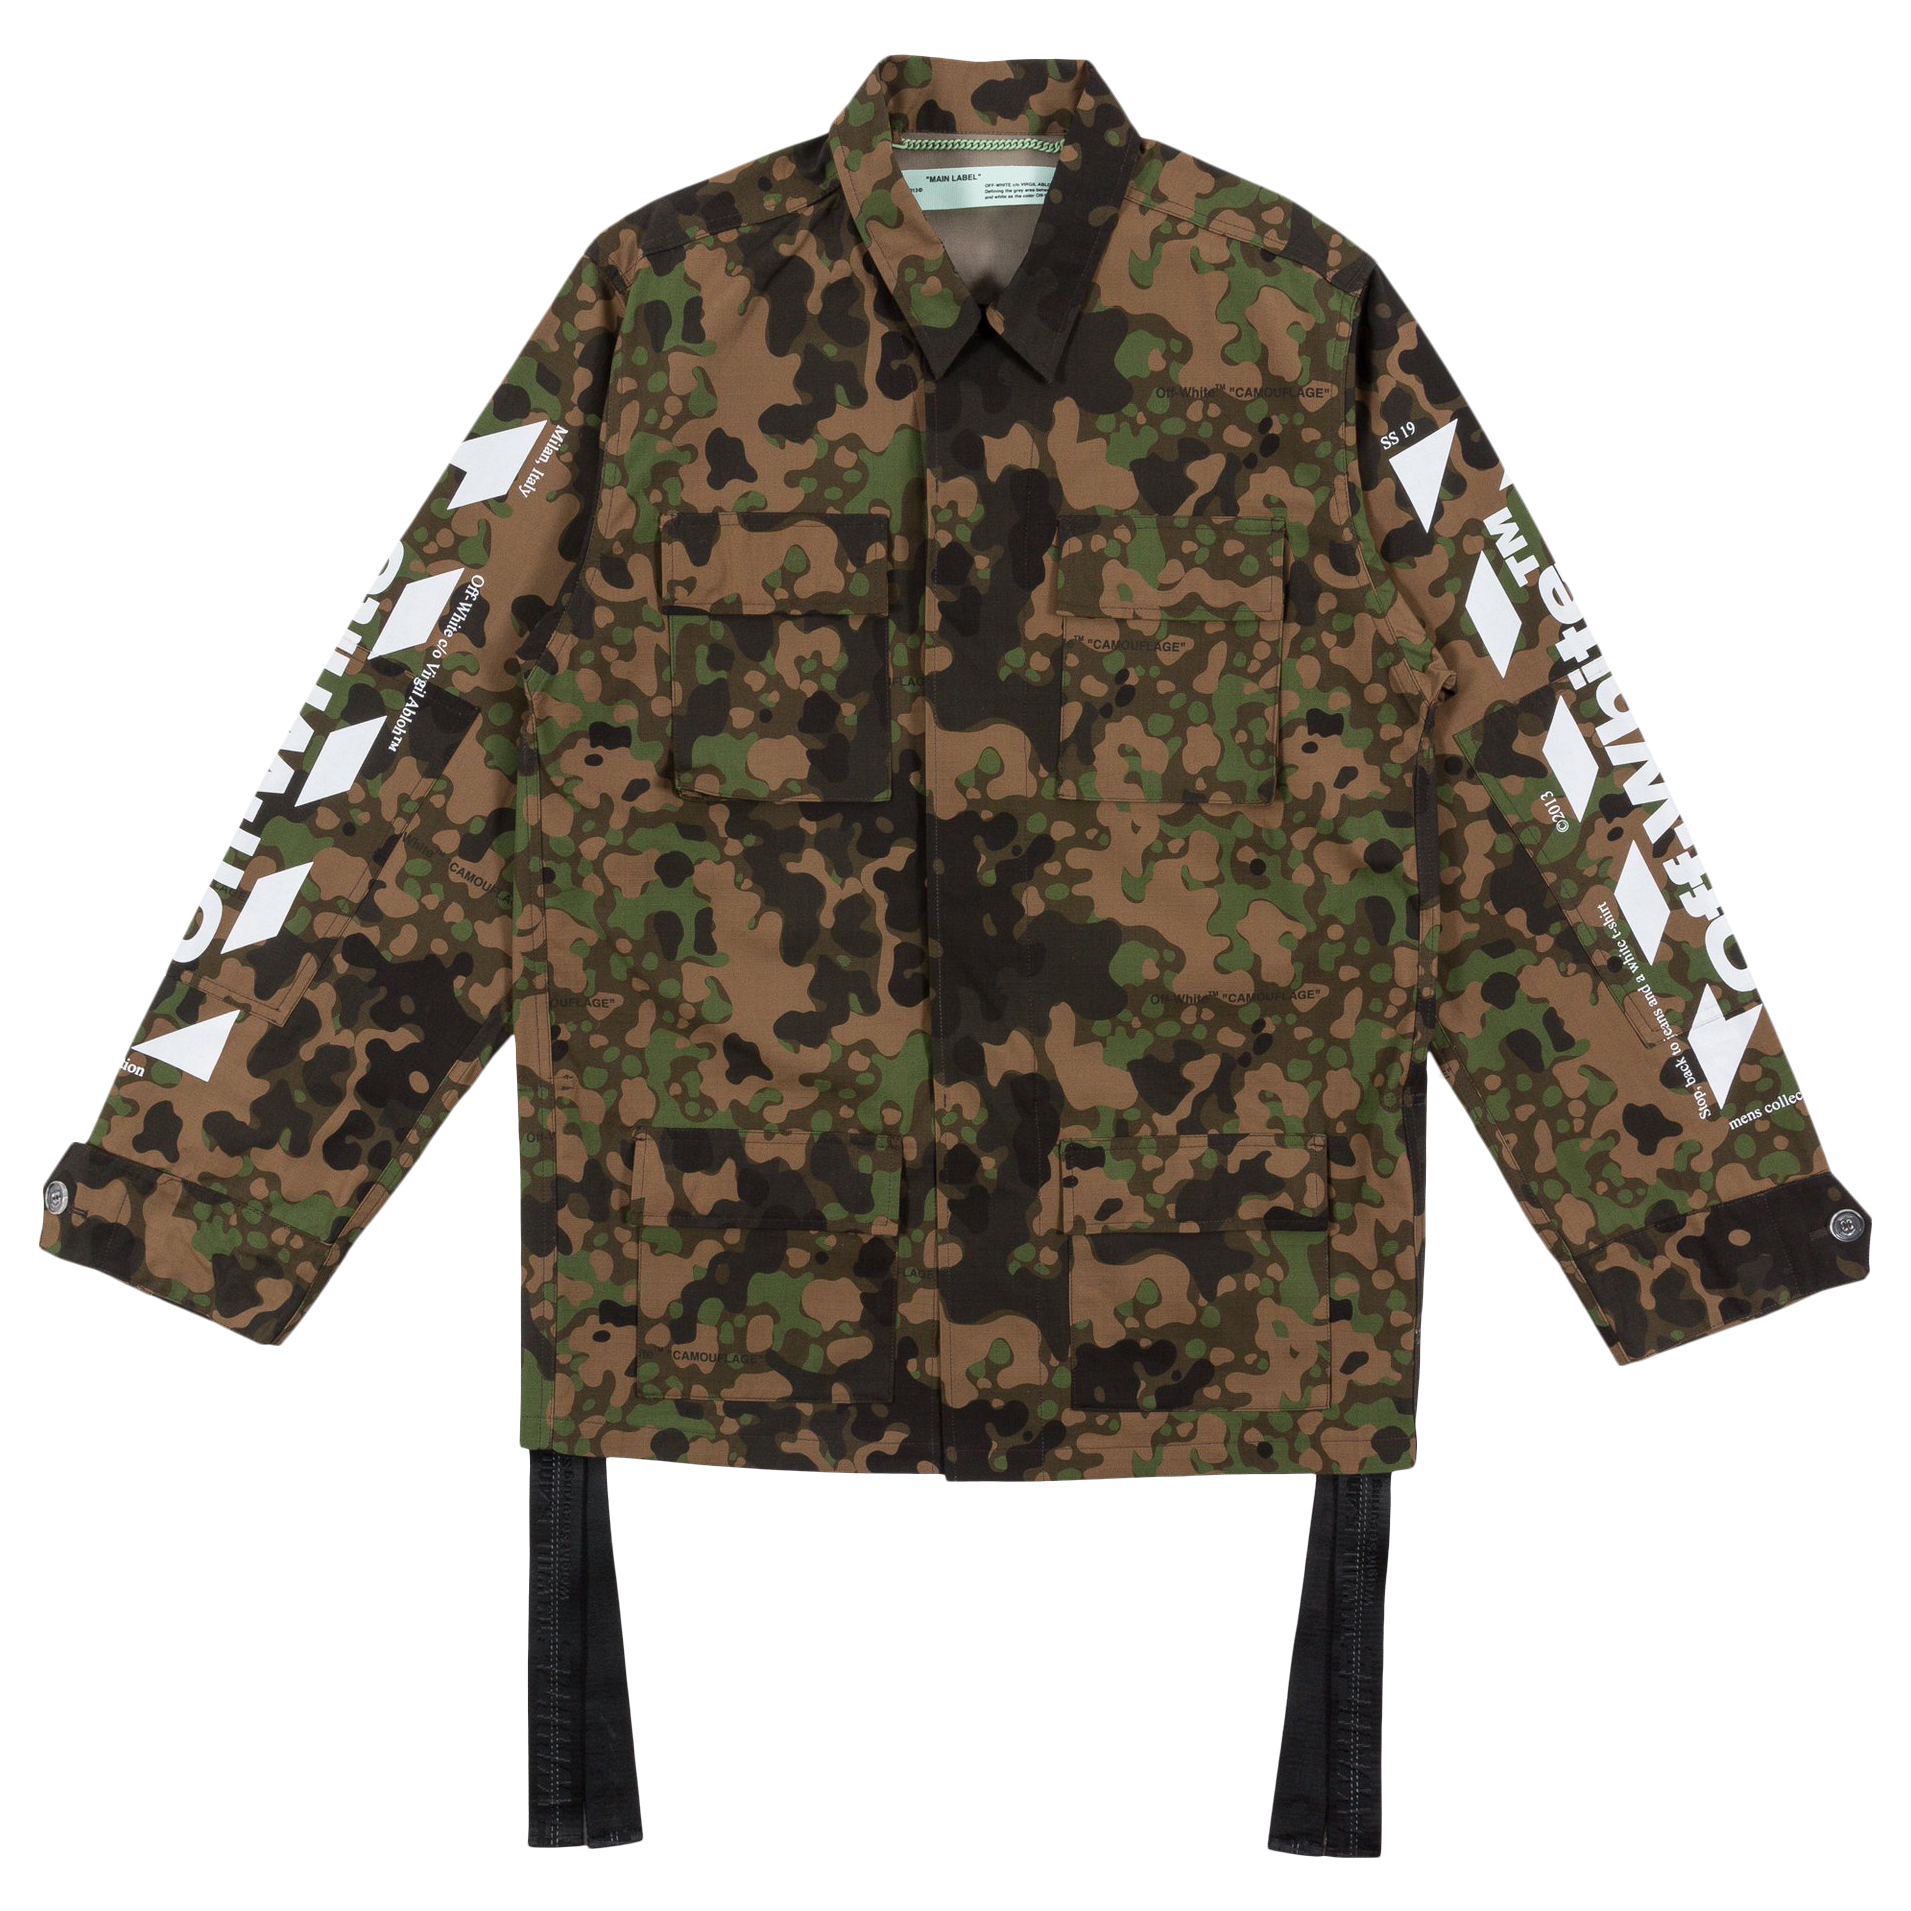 OFF WHITE Camoflauge Diag Field Jacket Military GreenBrown